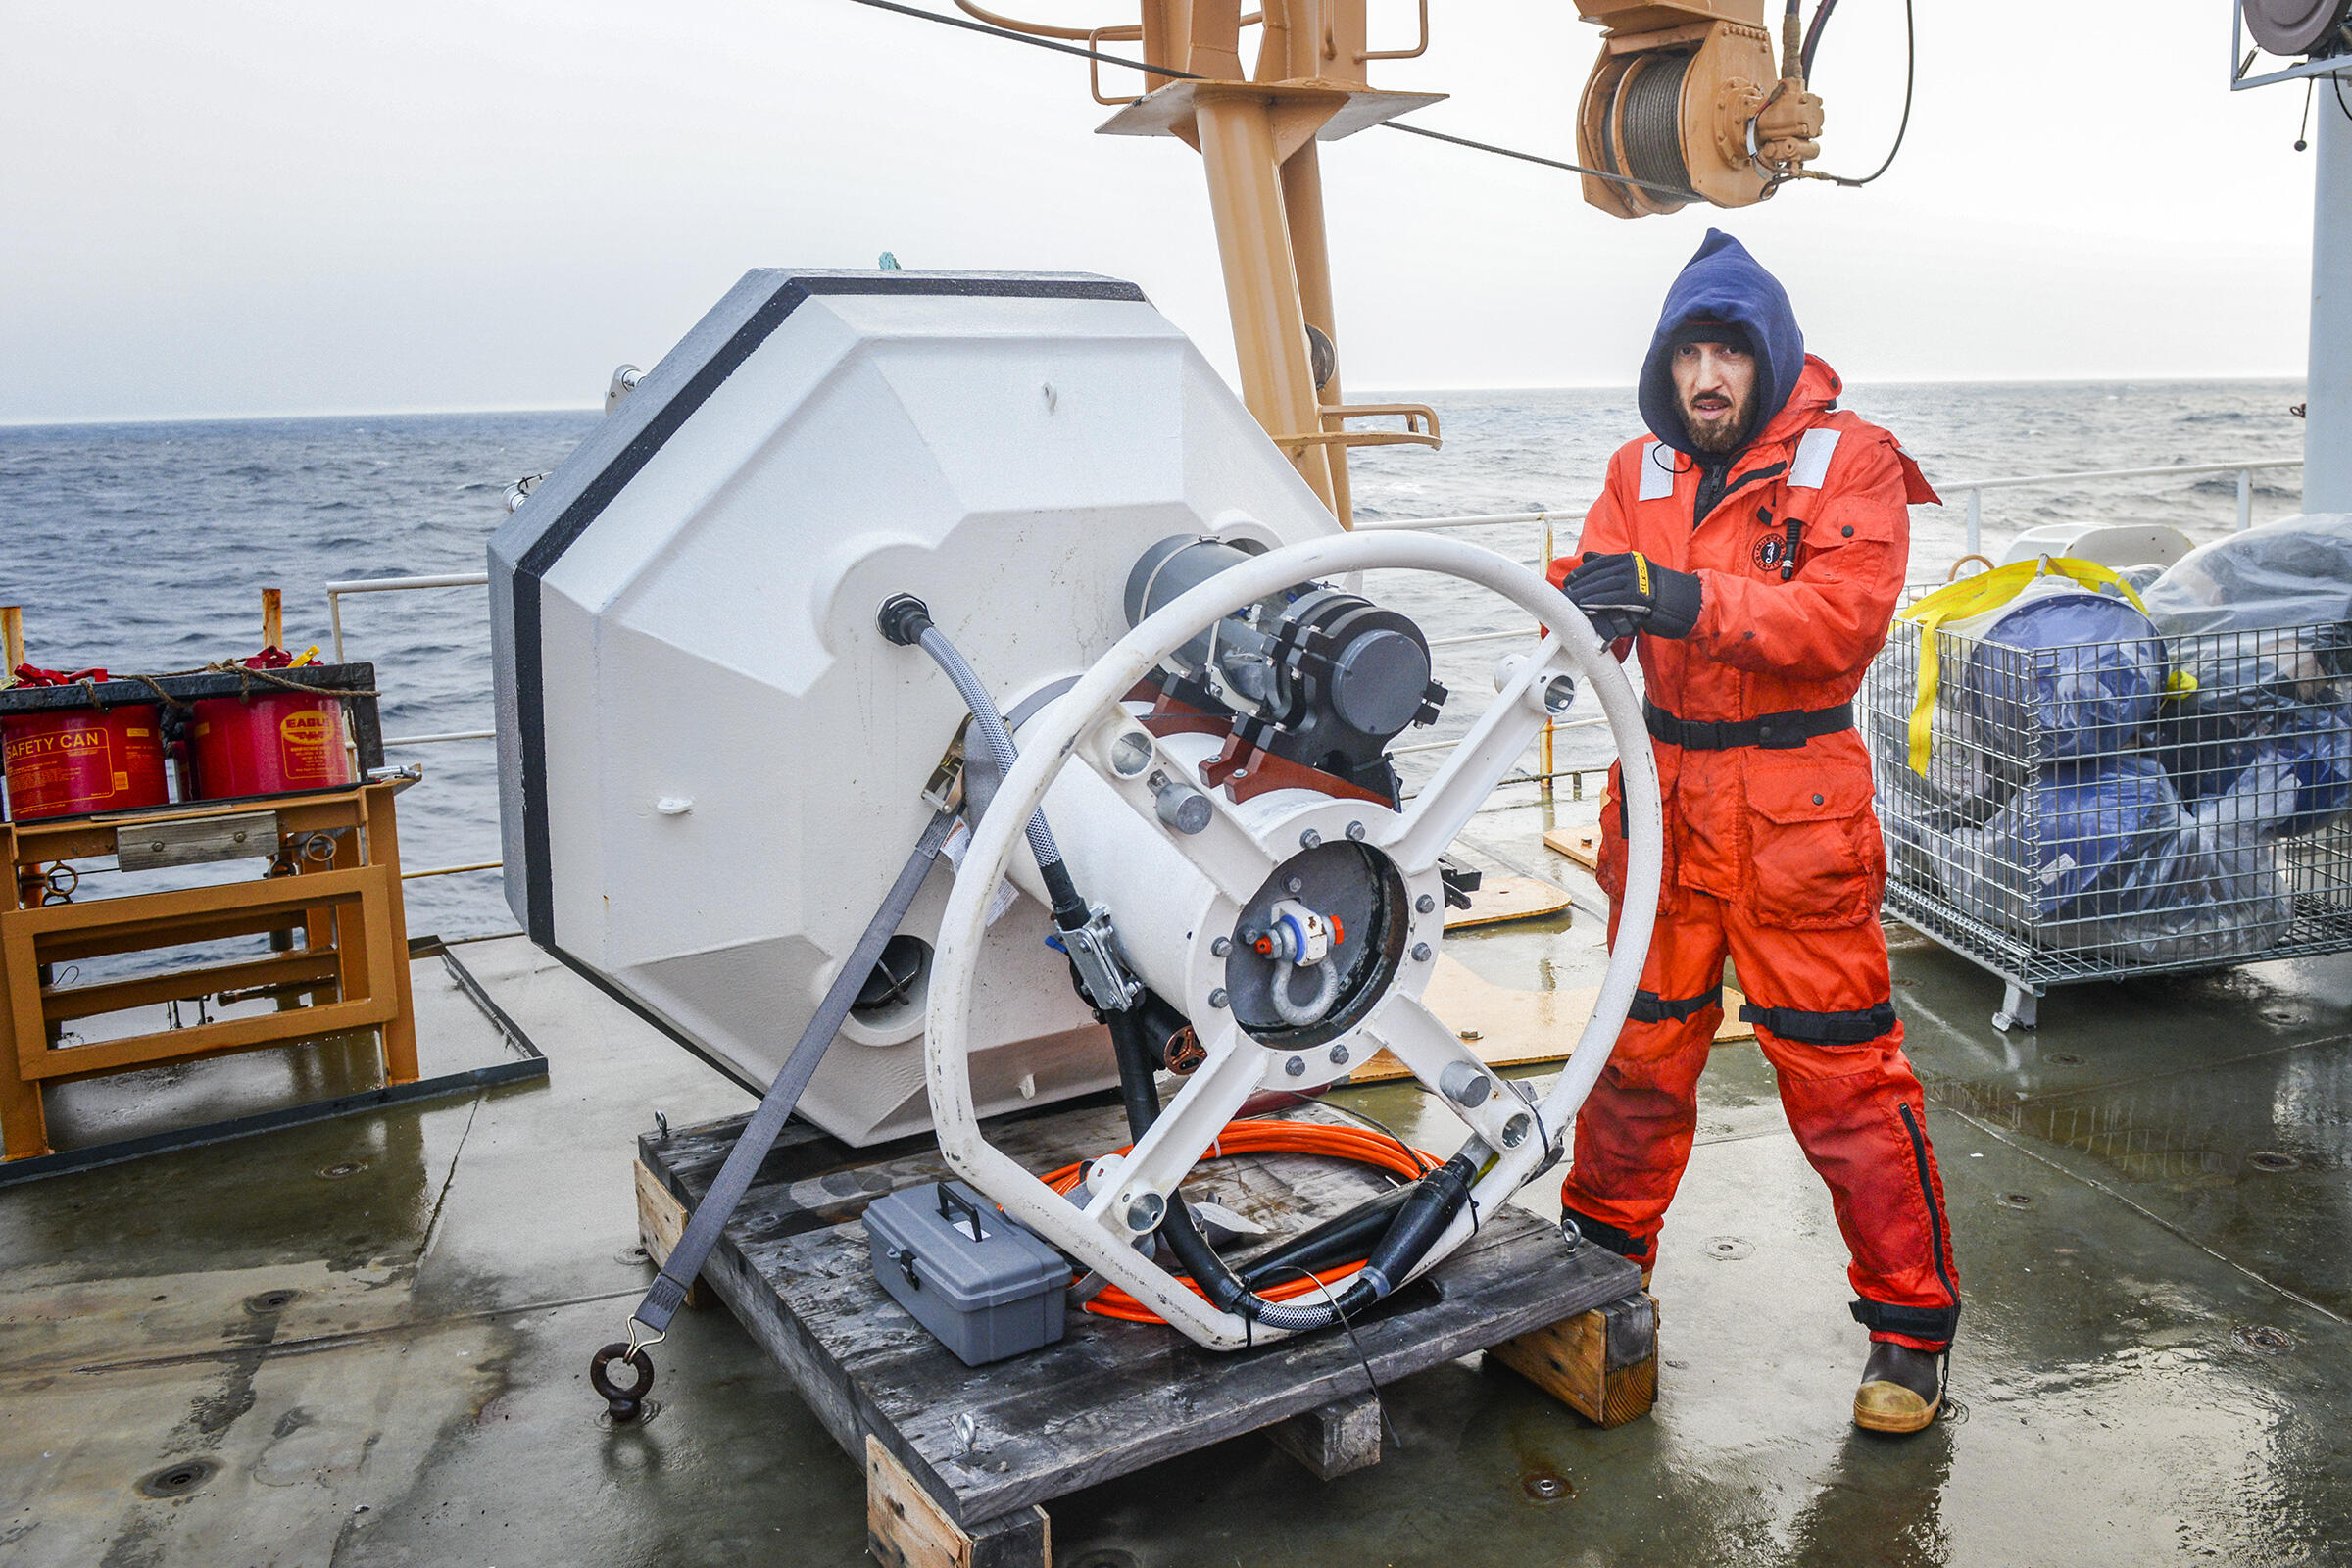 Shaun Bell from UW/JISAO/NOAA with a buoy developed to measure solar radiation in Chukchi Sea. Esther Horvath